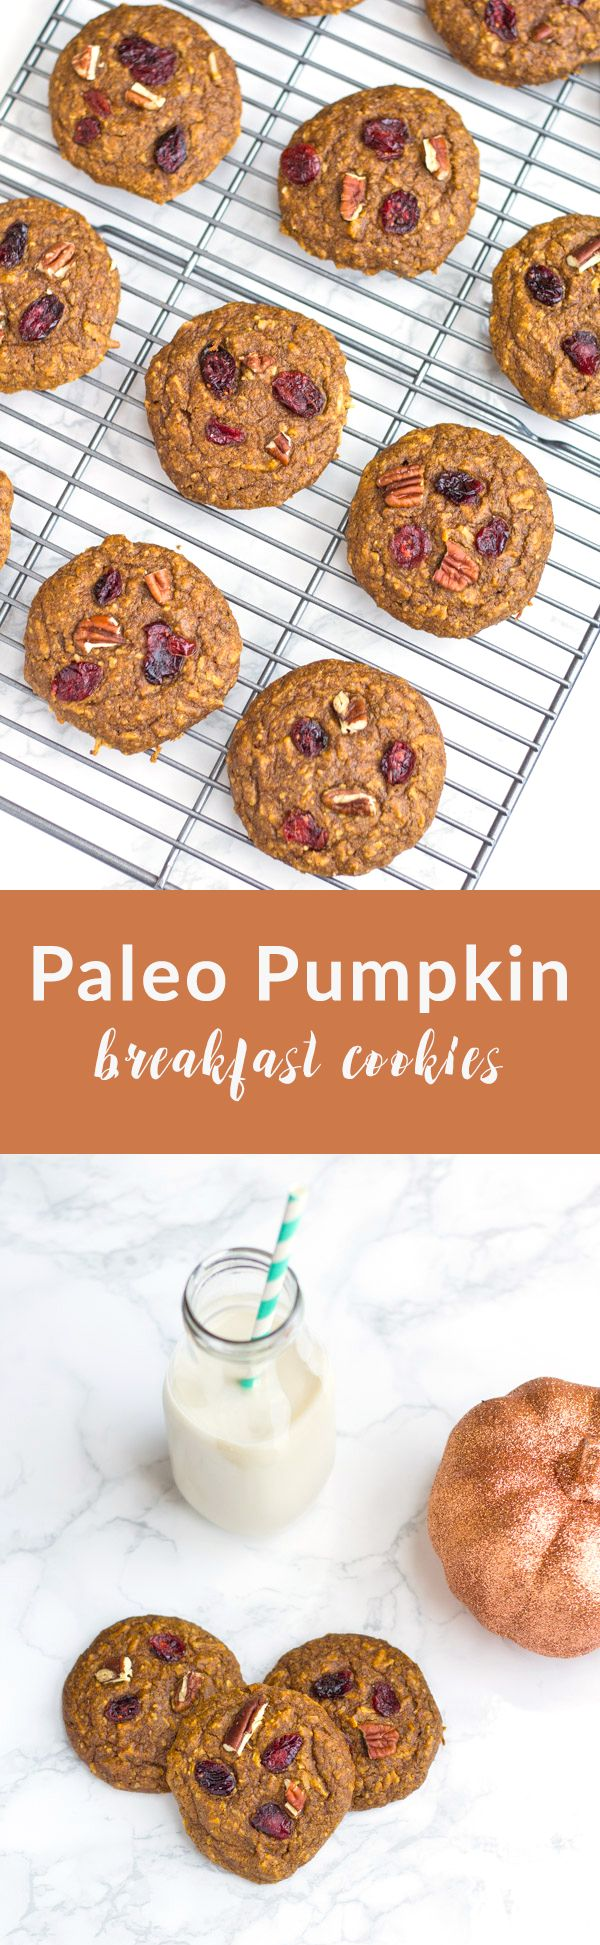 These Paleo Pumpkin Breakfast Cookies are the perfect way to start your day! Ready in 20 minutes with just one bowl. (Paleo Cookies)